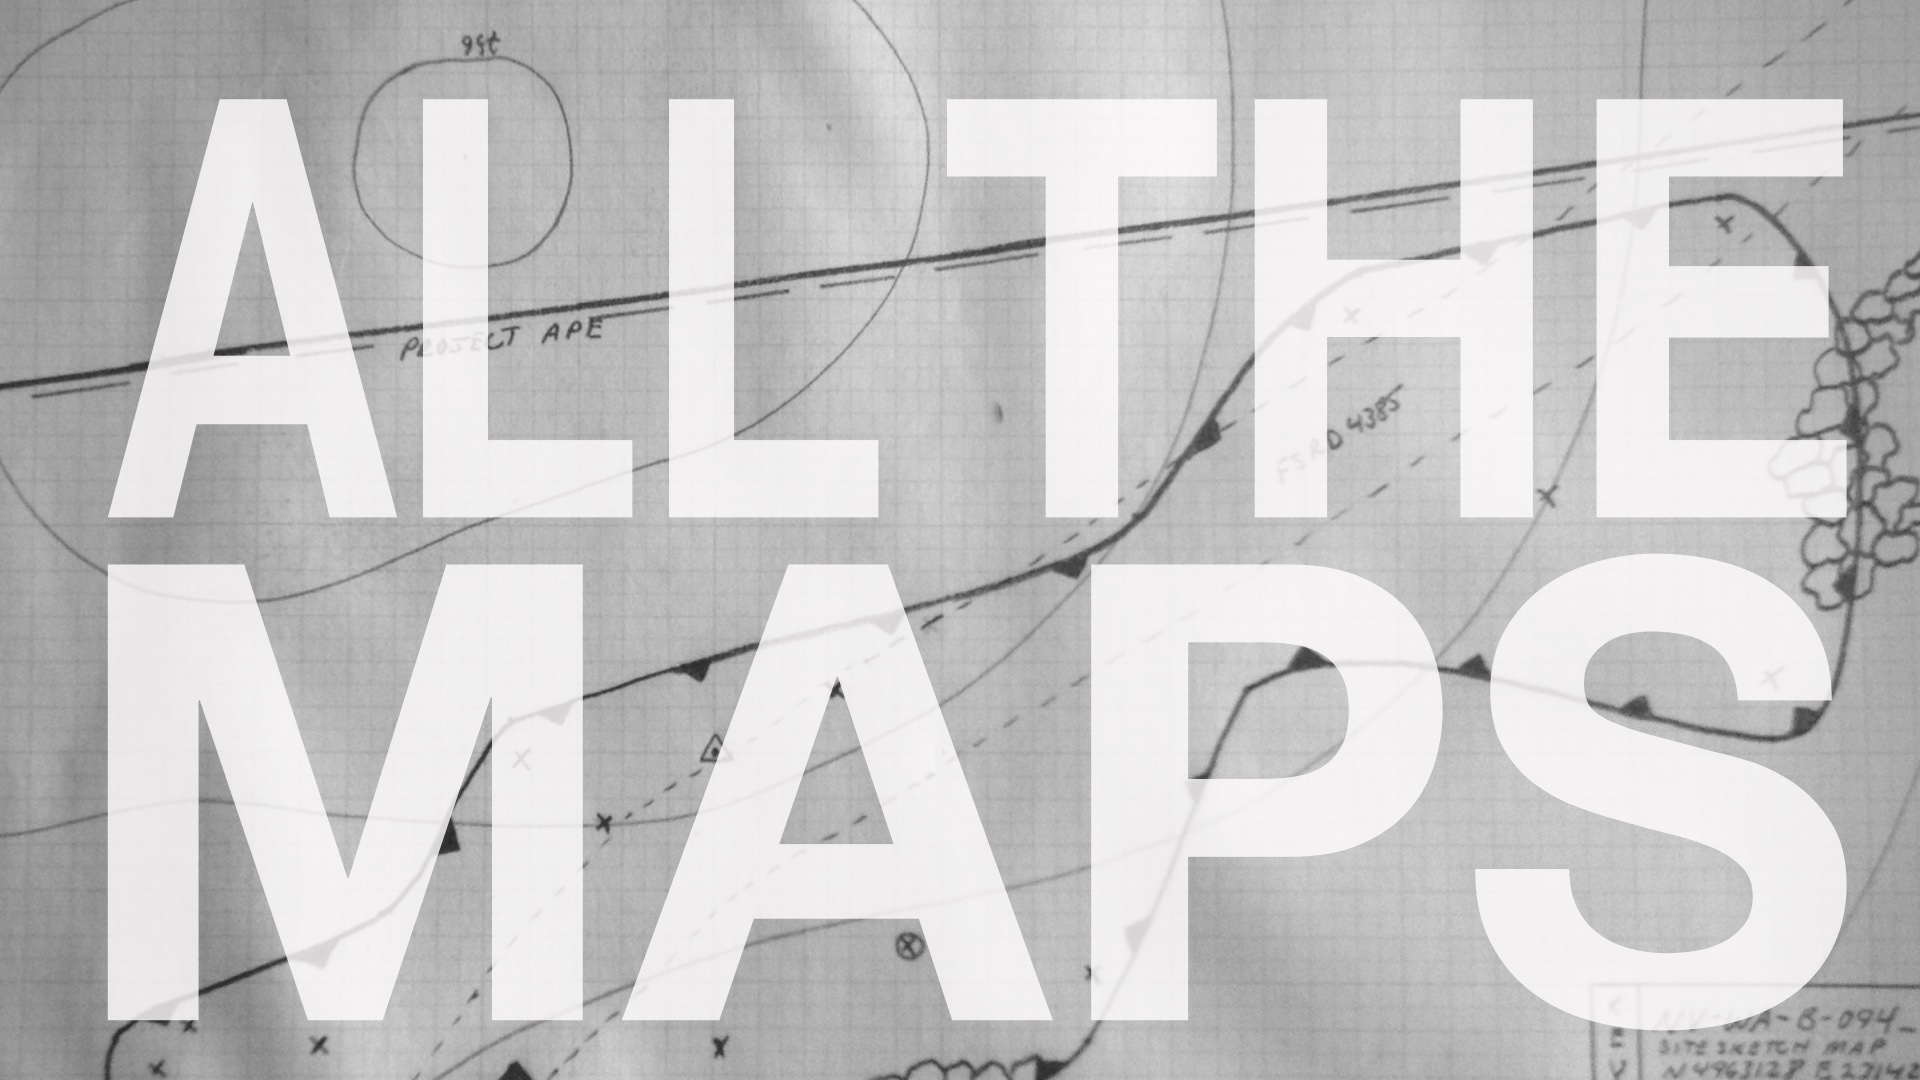 Mapping, Mapping, Mapping   In this video we'll talk about the UTM Grid, Township and Range, Smithsonian Trinomials, and site mapping.